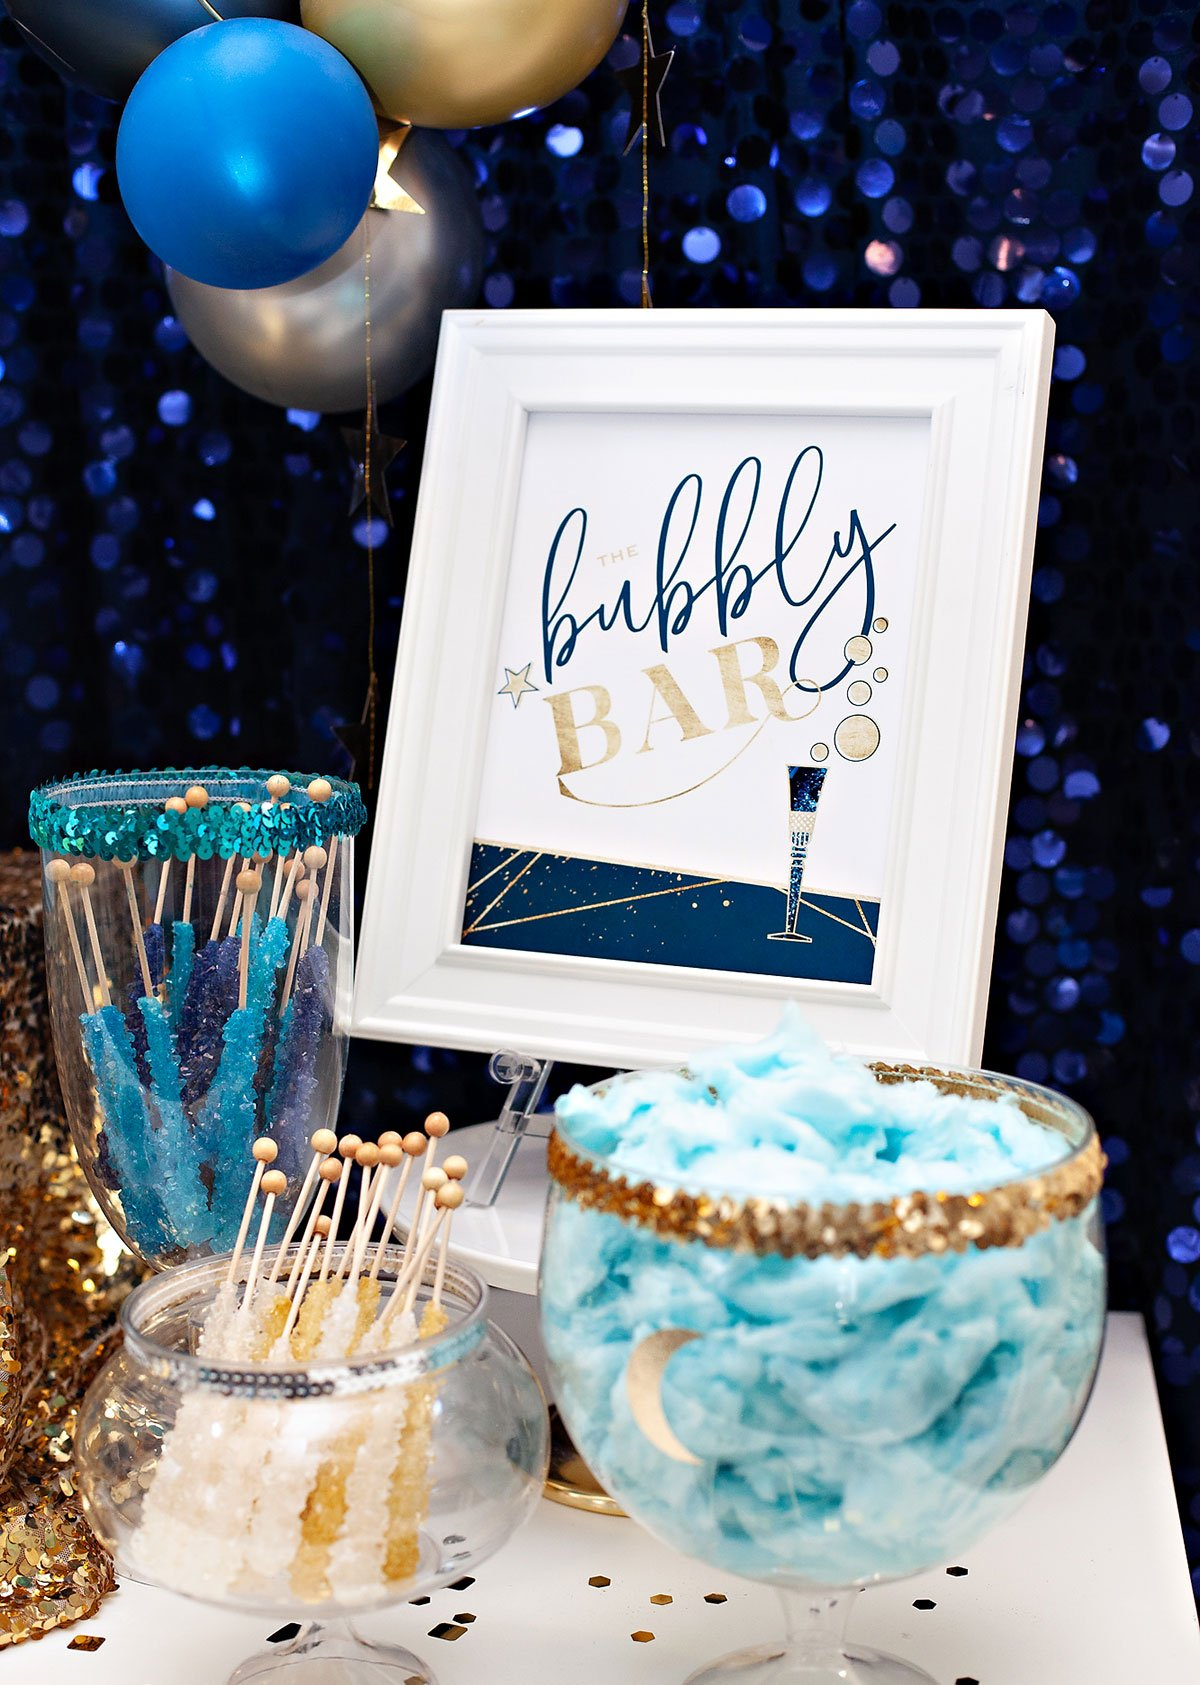 Bubbly Bar Printable Sign